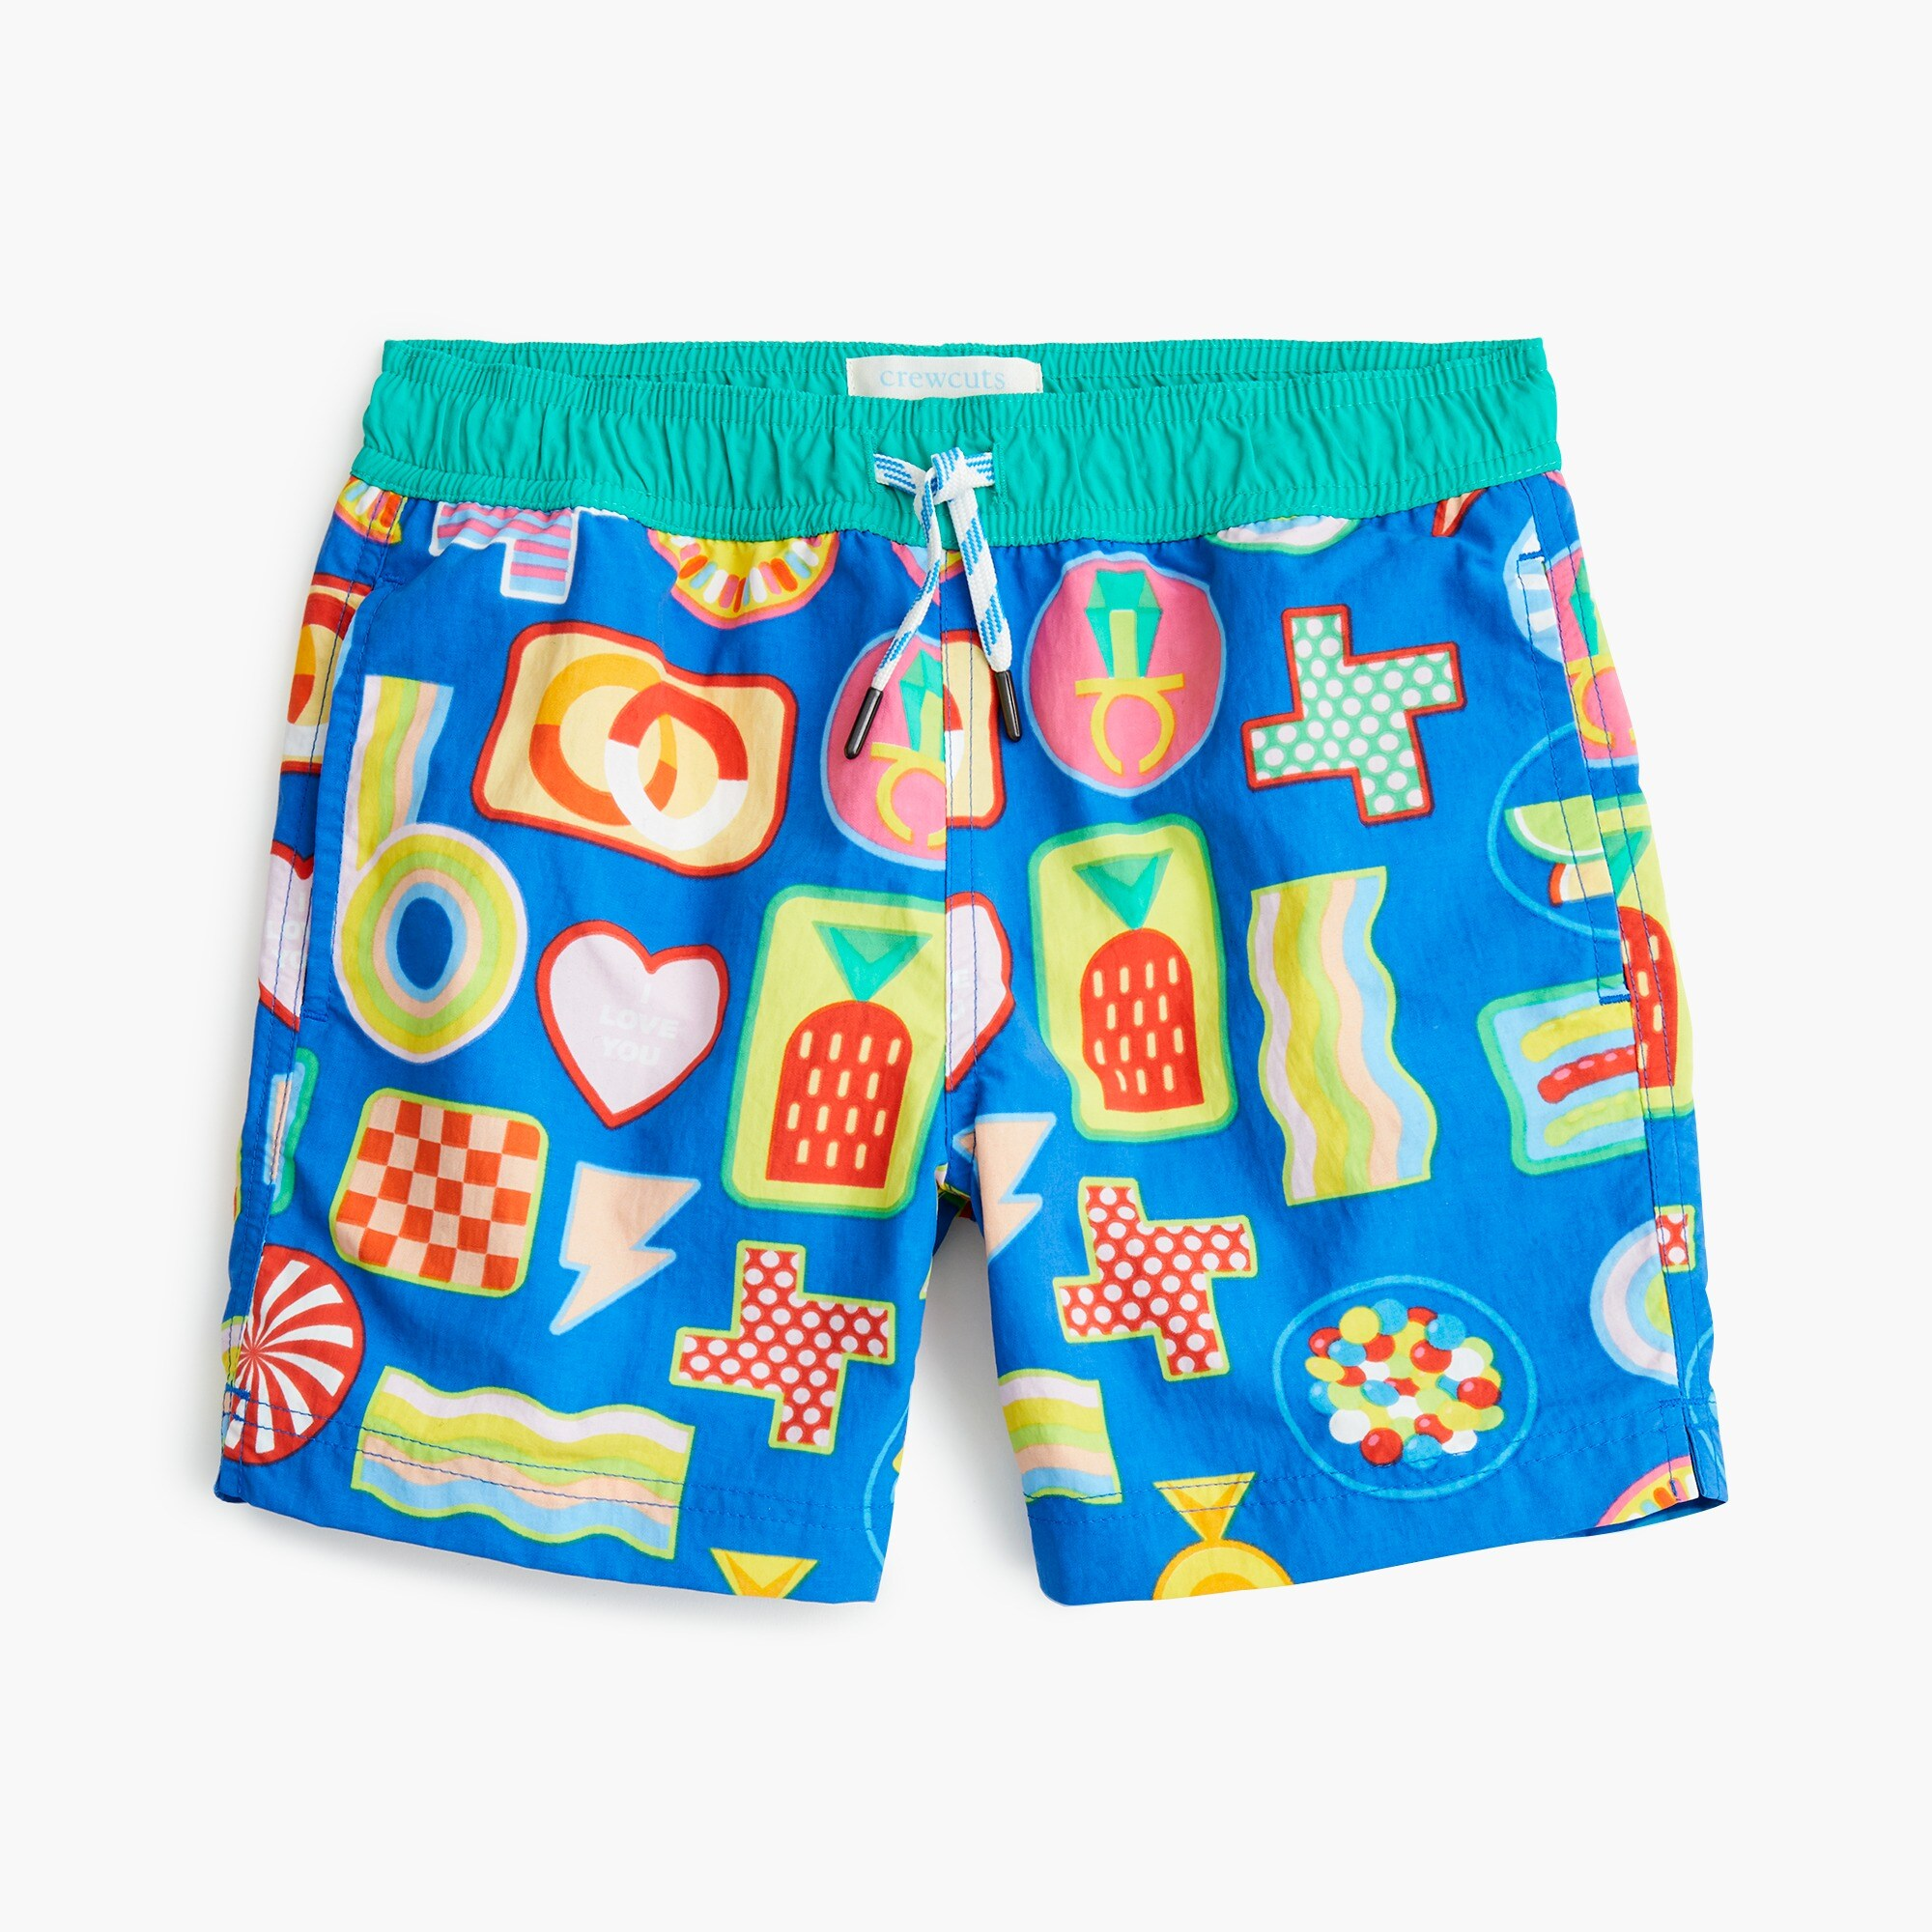 Image 2 for Boys' crewcuts X Kid Made Modern swim trunk